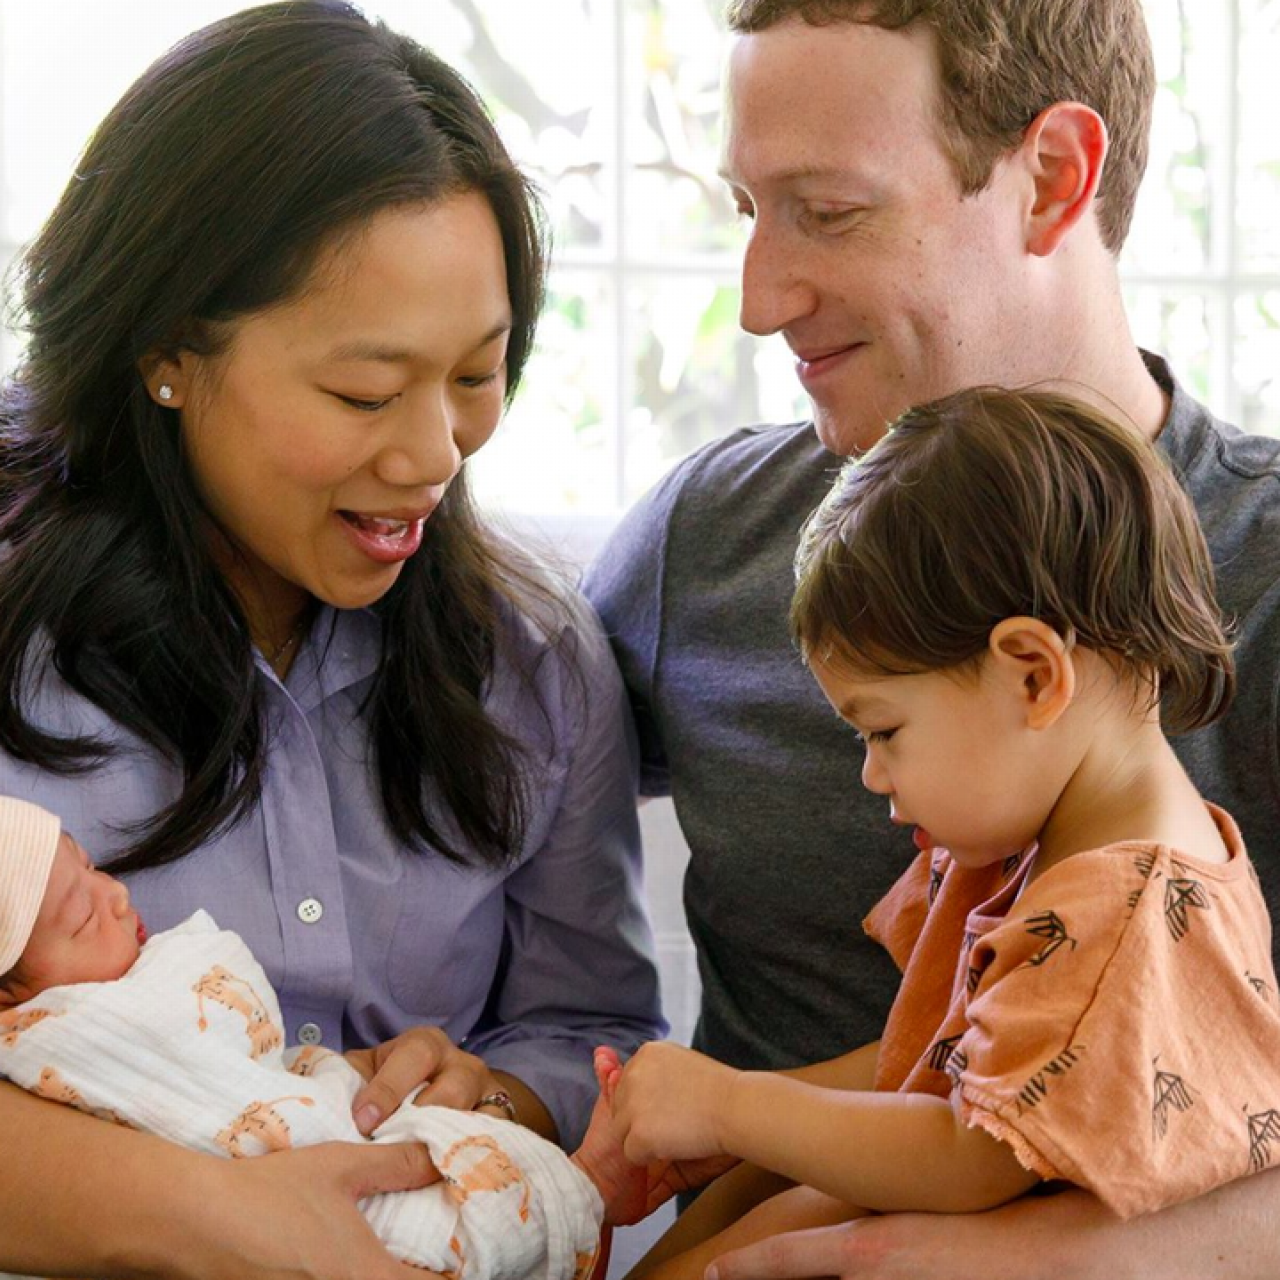 Mark Zuckerberg's second daughter is here and her name is